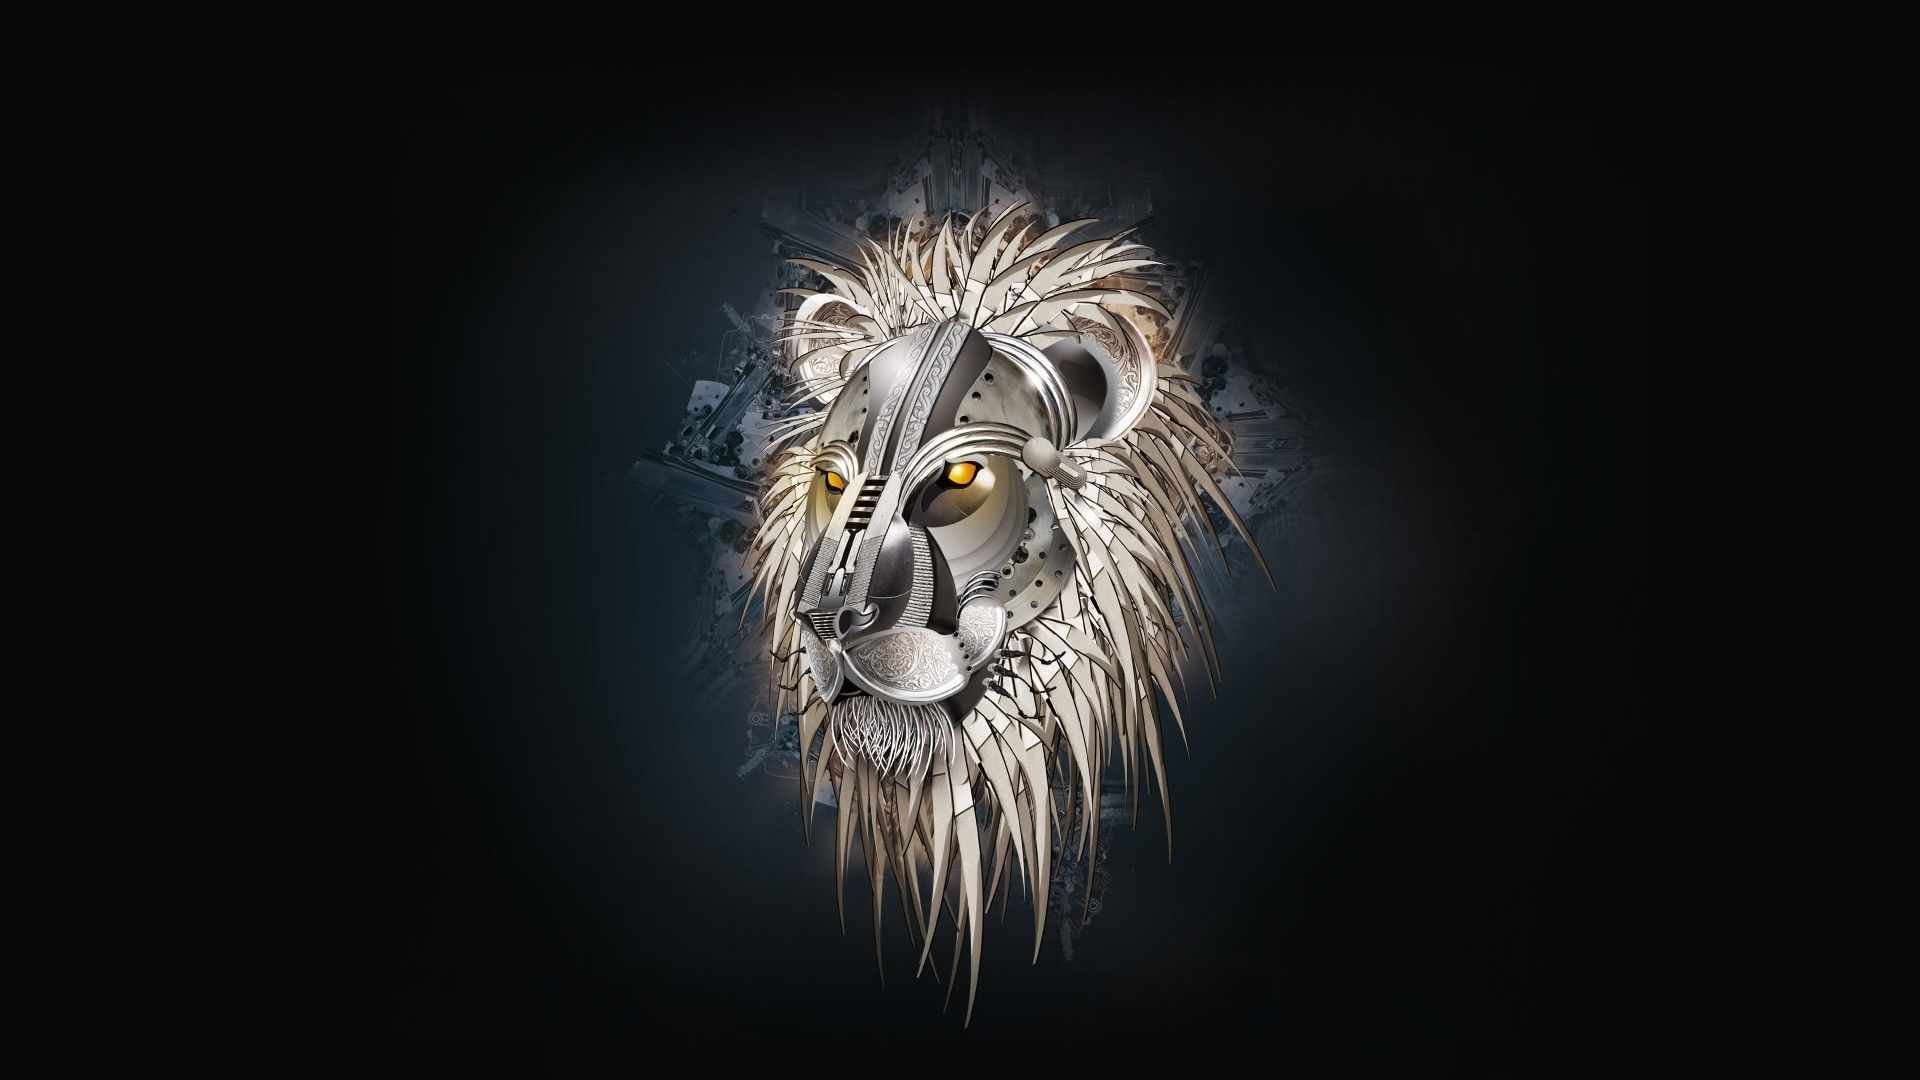 Steampunk Lion Abstract Hd Wallpaper Free Hd Wallpapers For Desktop Lion Hd Wallpaper Lion Wallpaper Abstract Lion